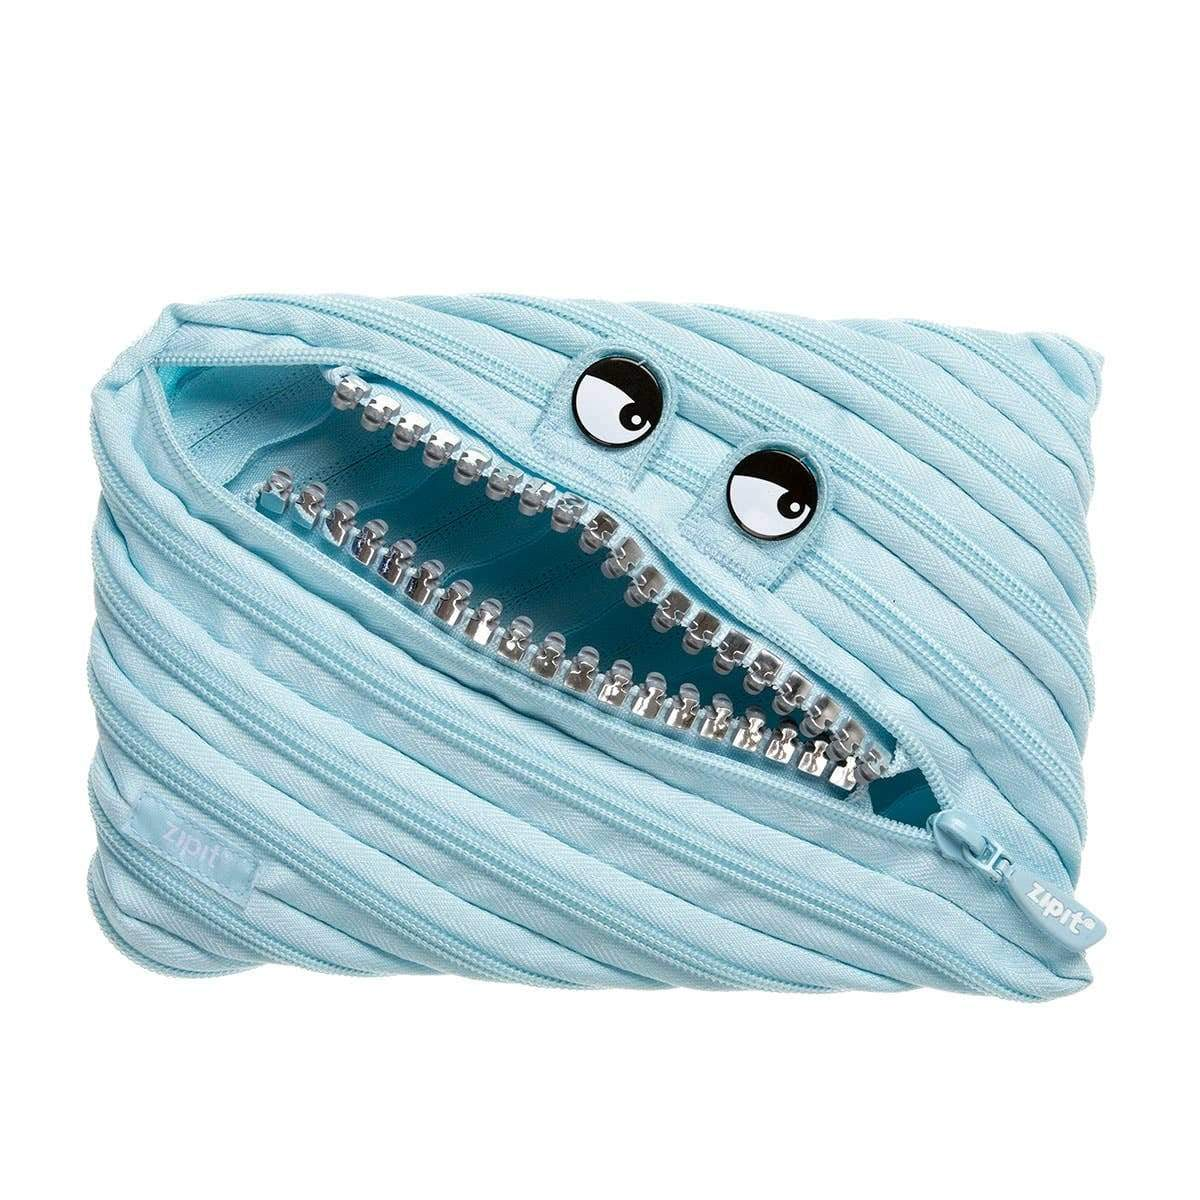 Grillz Monster Jumbo Pouch: Blue ZipIt Clothing/Accessories